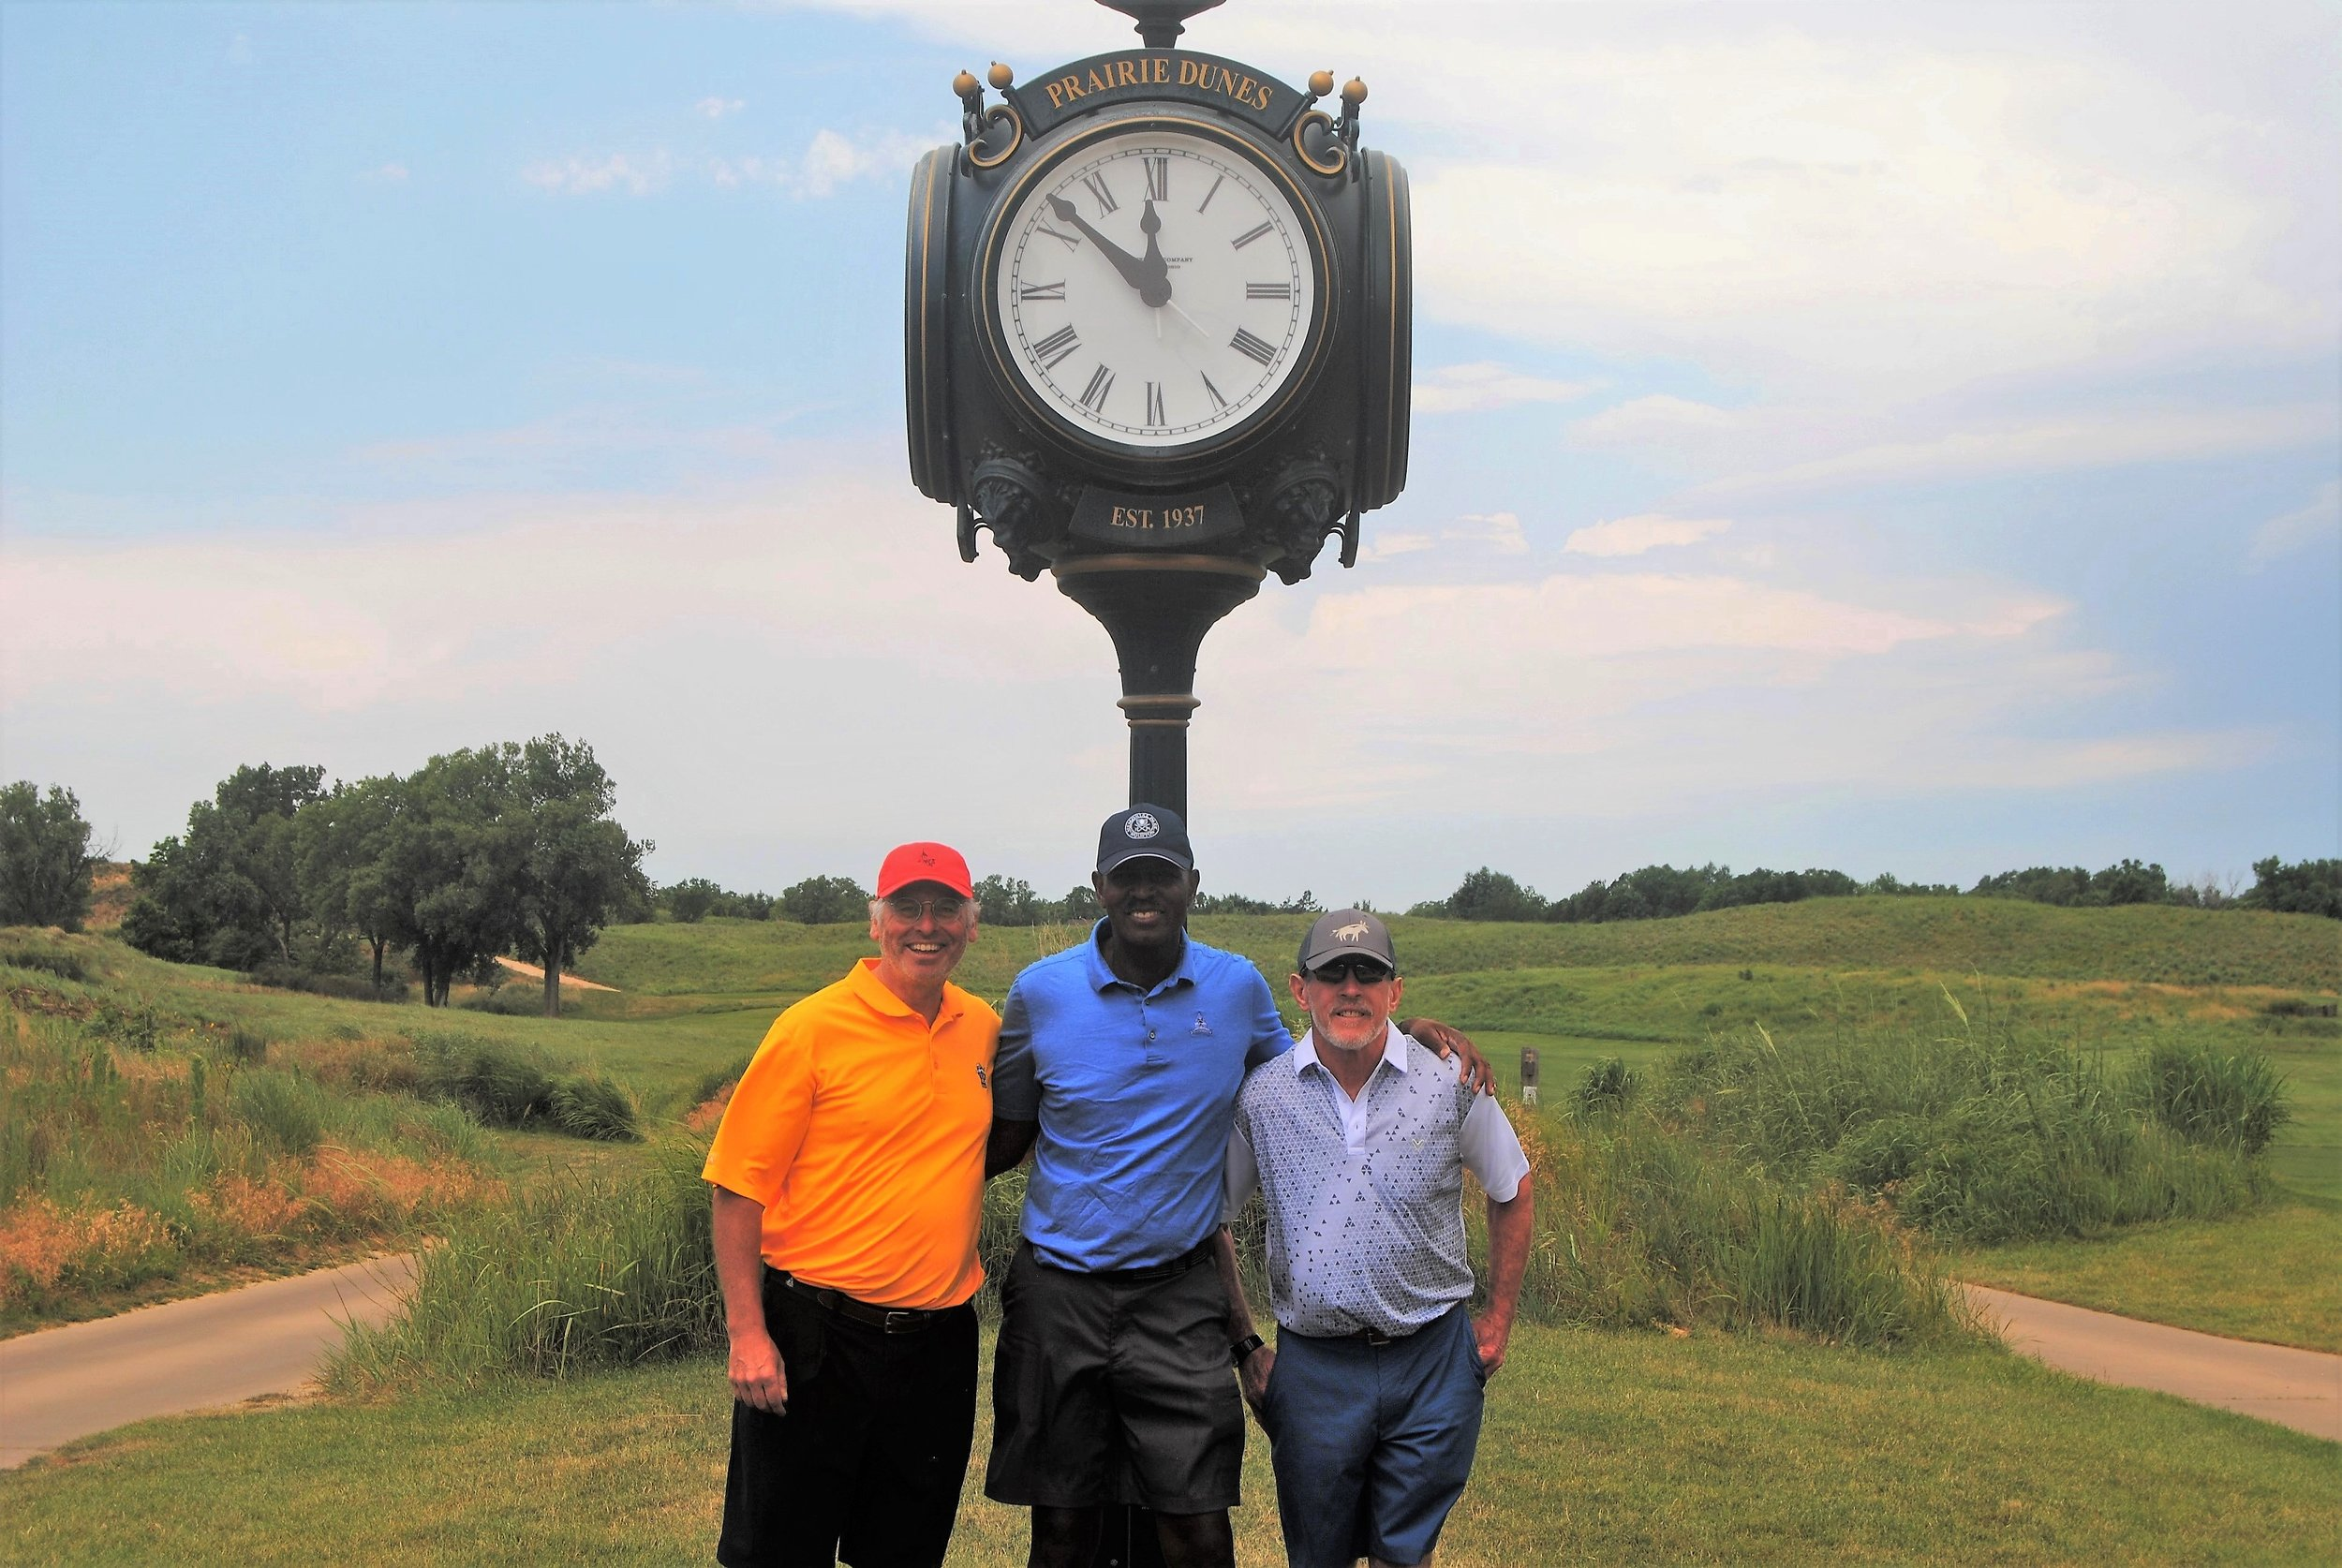 Dave, Me, and David following our round at Prairie Dunes